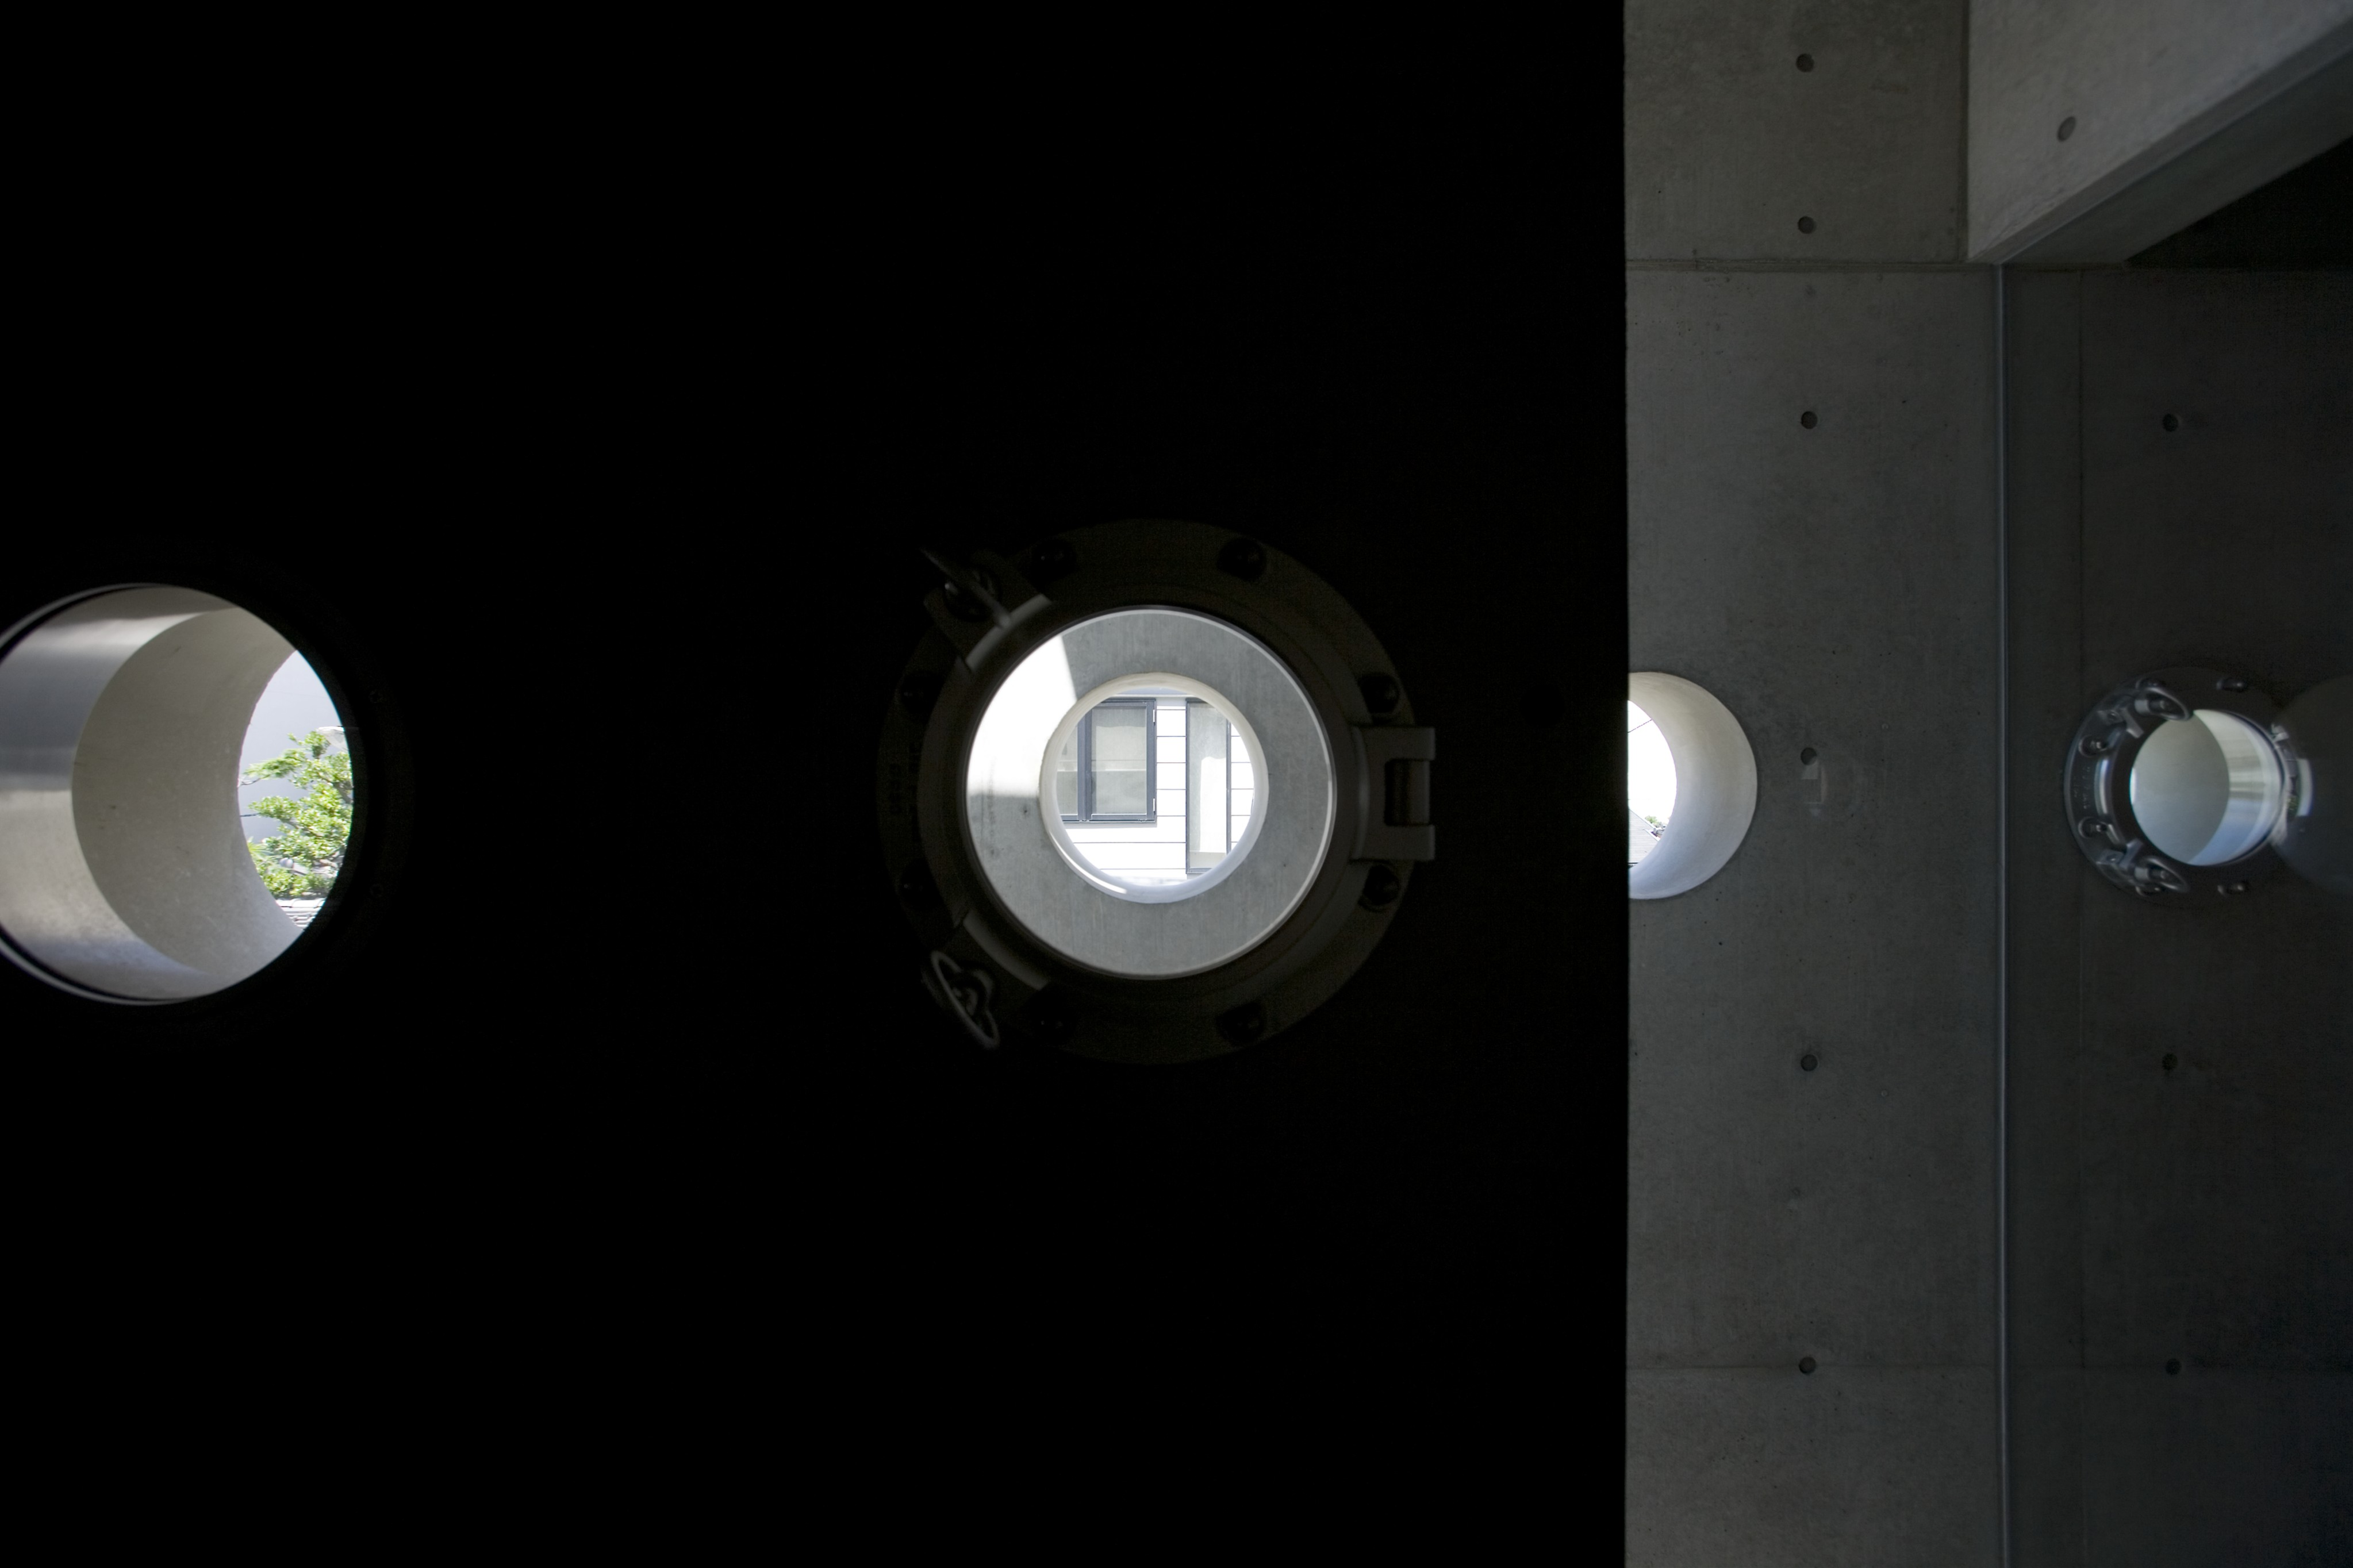 The layers of holes allow, as per the designer's intent, a series of dramatic shafts of light entering the home throughout its length.